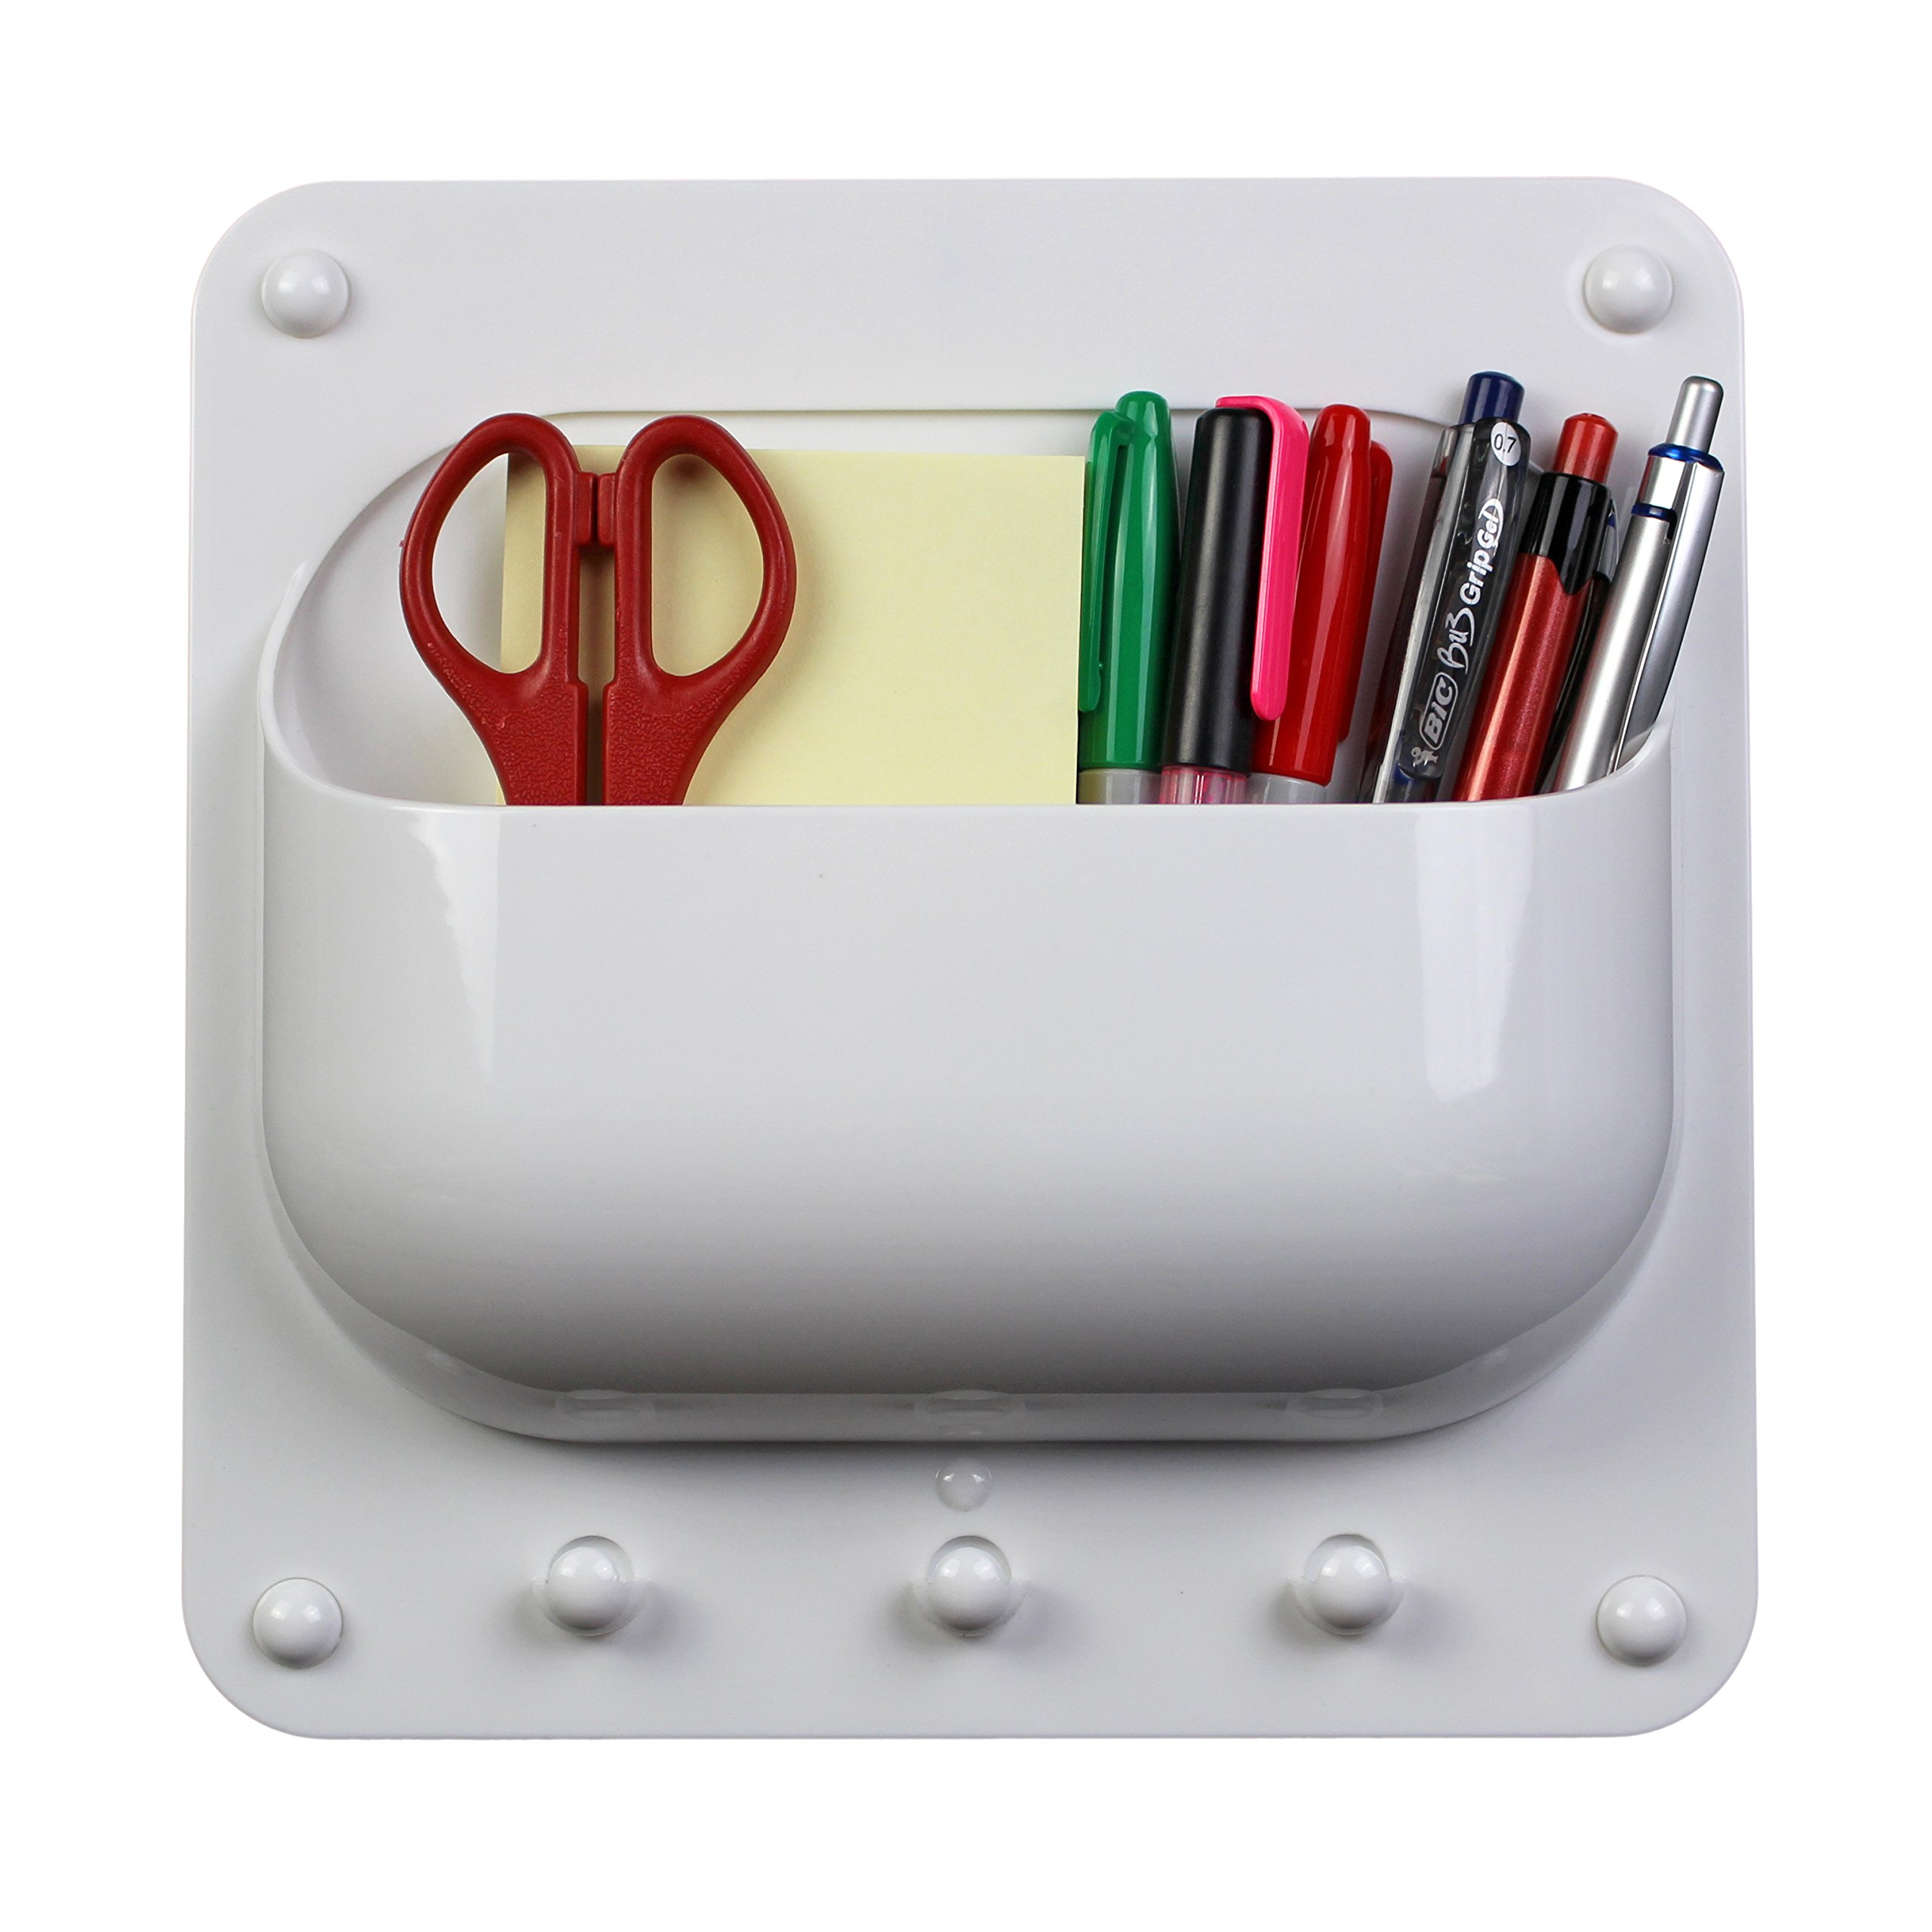 O-Life Caddy Organizer for Hanging Keys and Storing Pens, Notes, Charging Cables, Adapters and other Supplies for Offices, Classrooms and Homes - White